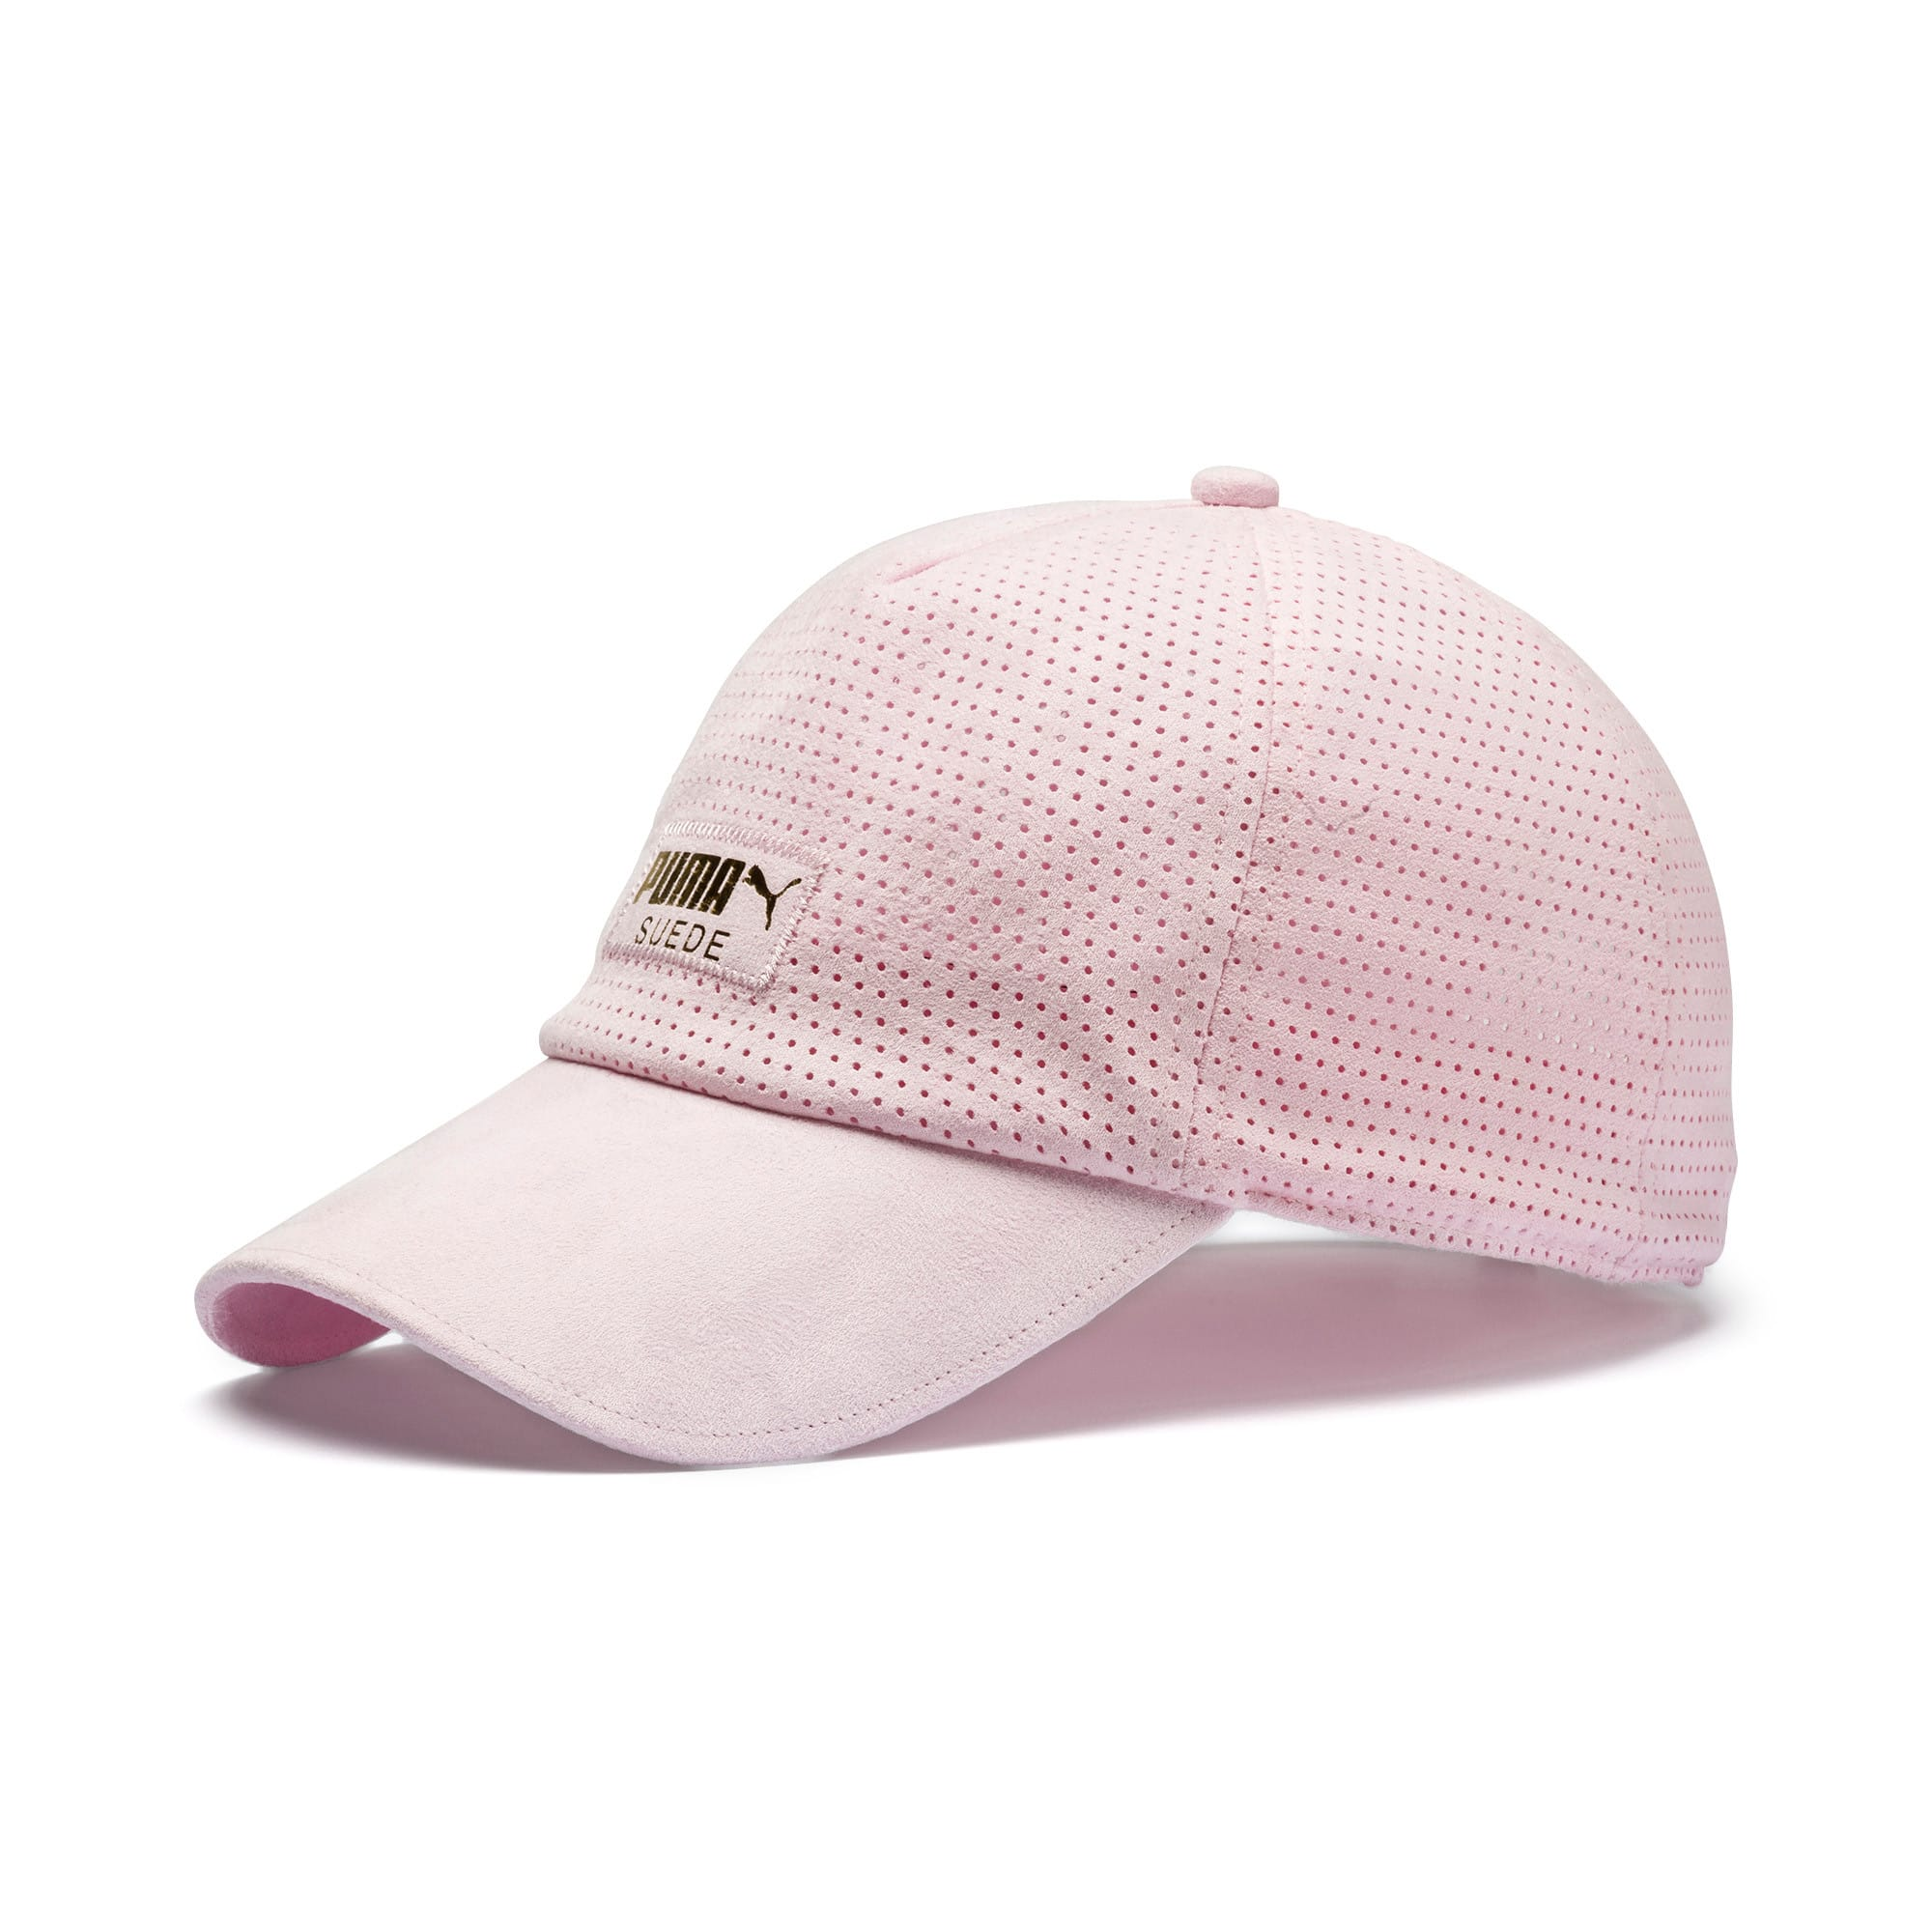 Thumbnail 1 of Suede Baseball Cap, Lilac Sachet, medium